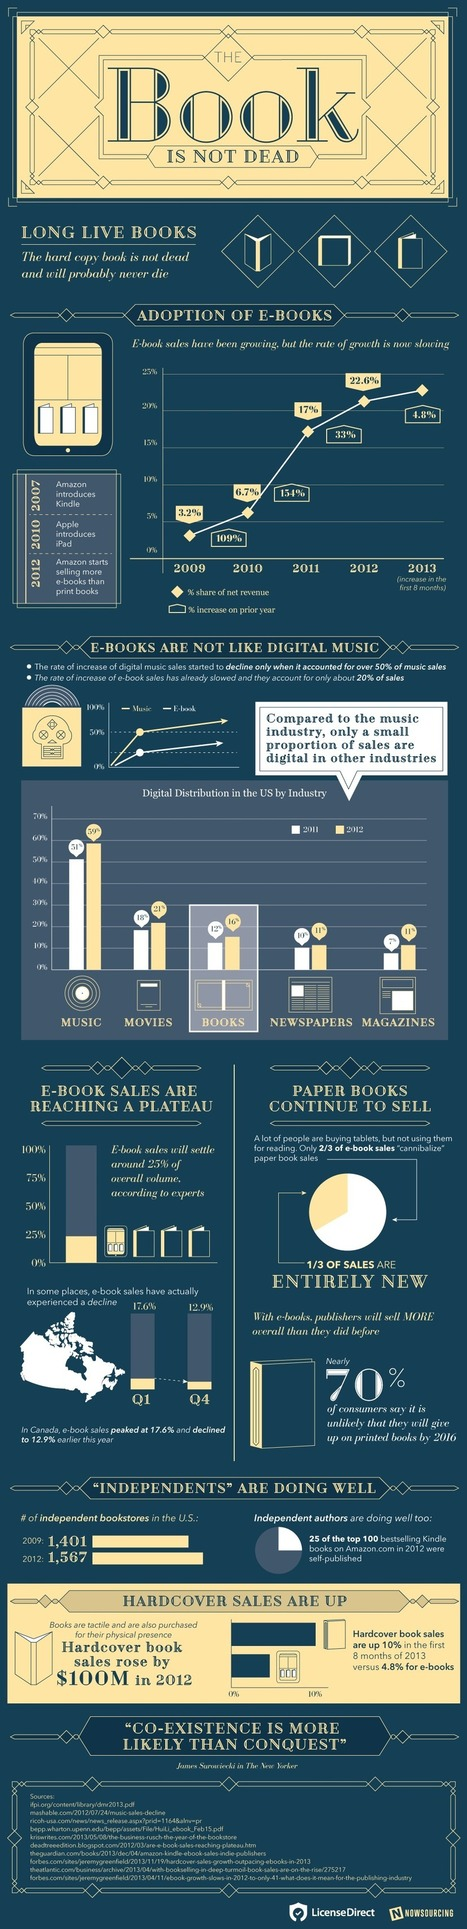 The Printed Book Is Not Dead; Long Live the Book! | Book Publishing Trends | Scoop.it